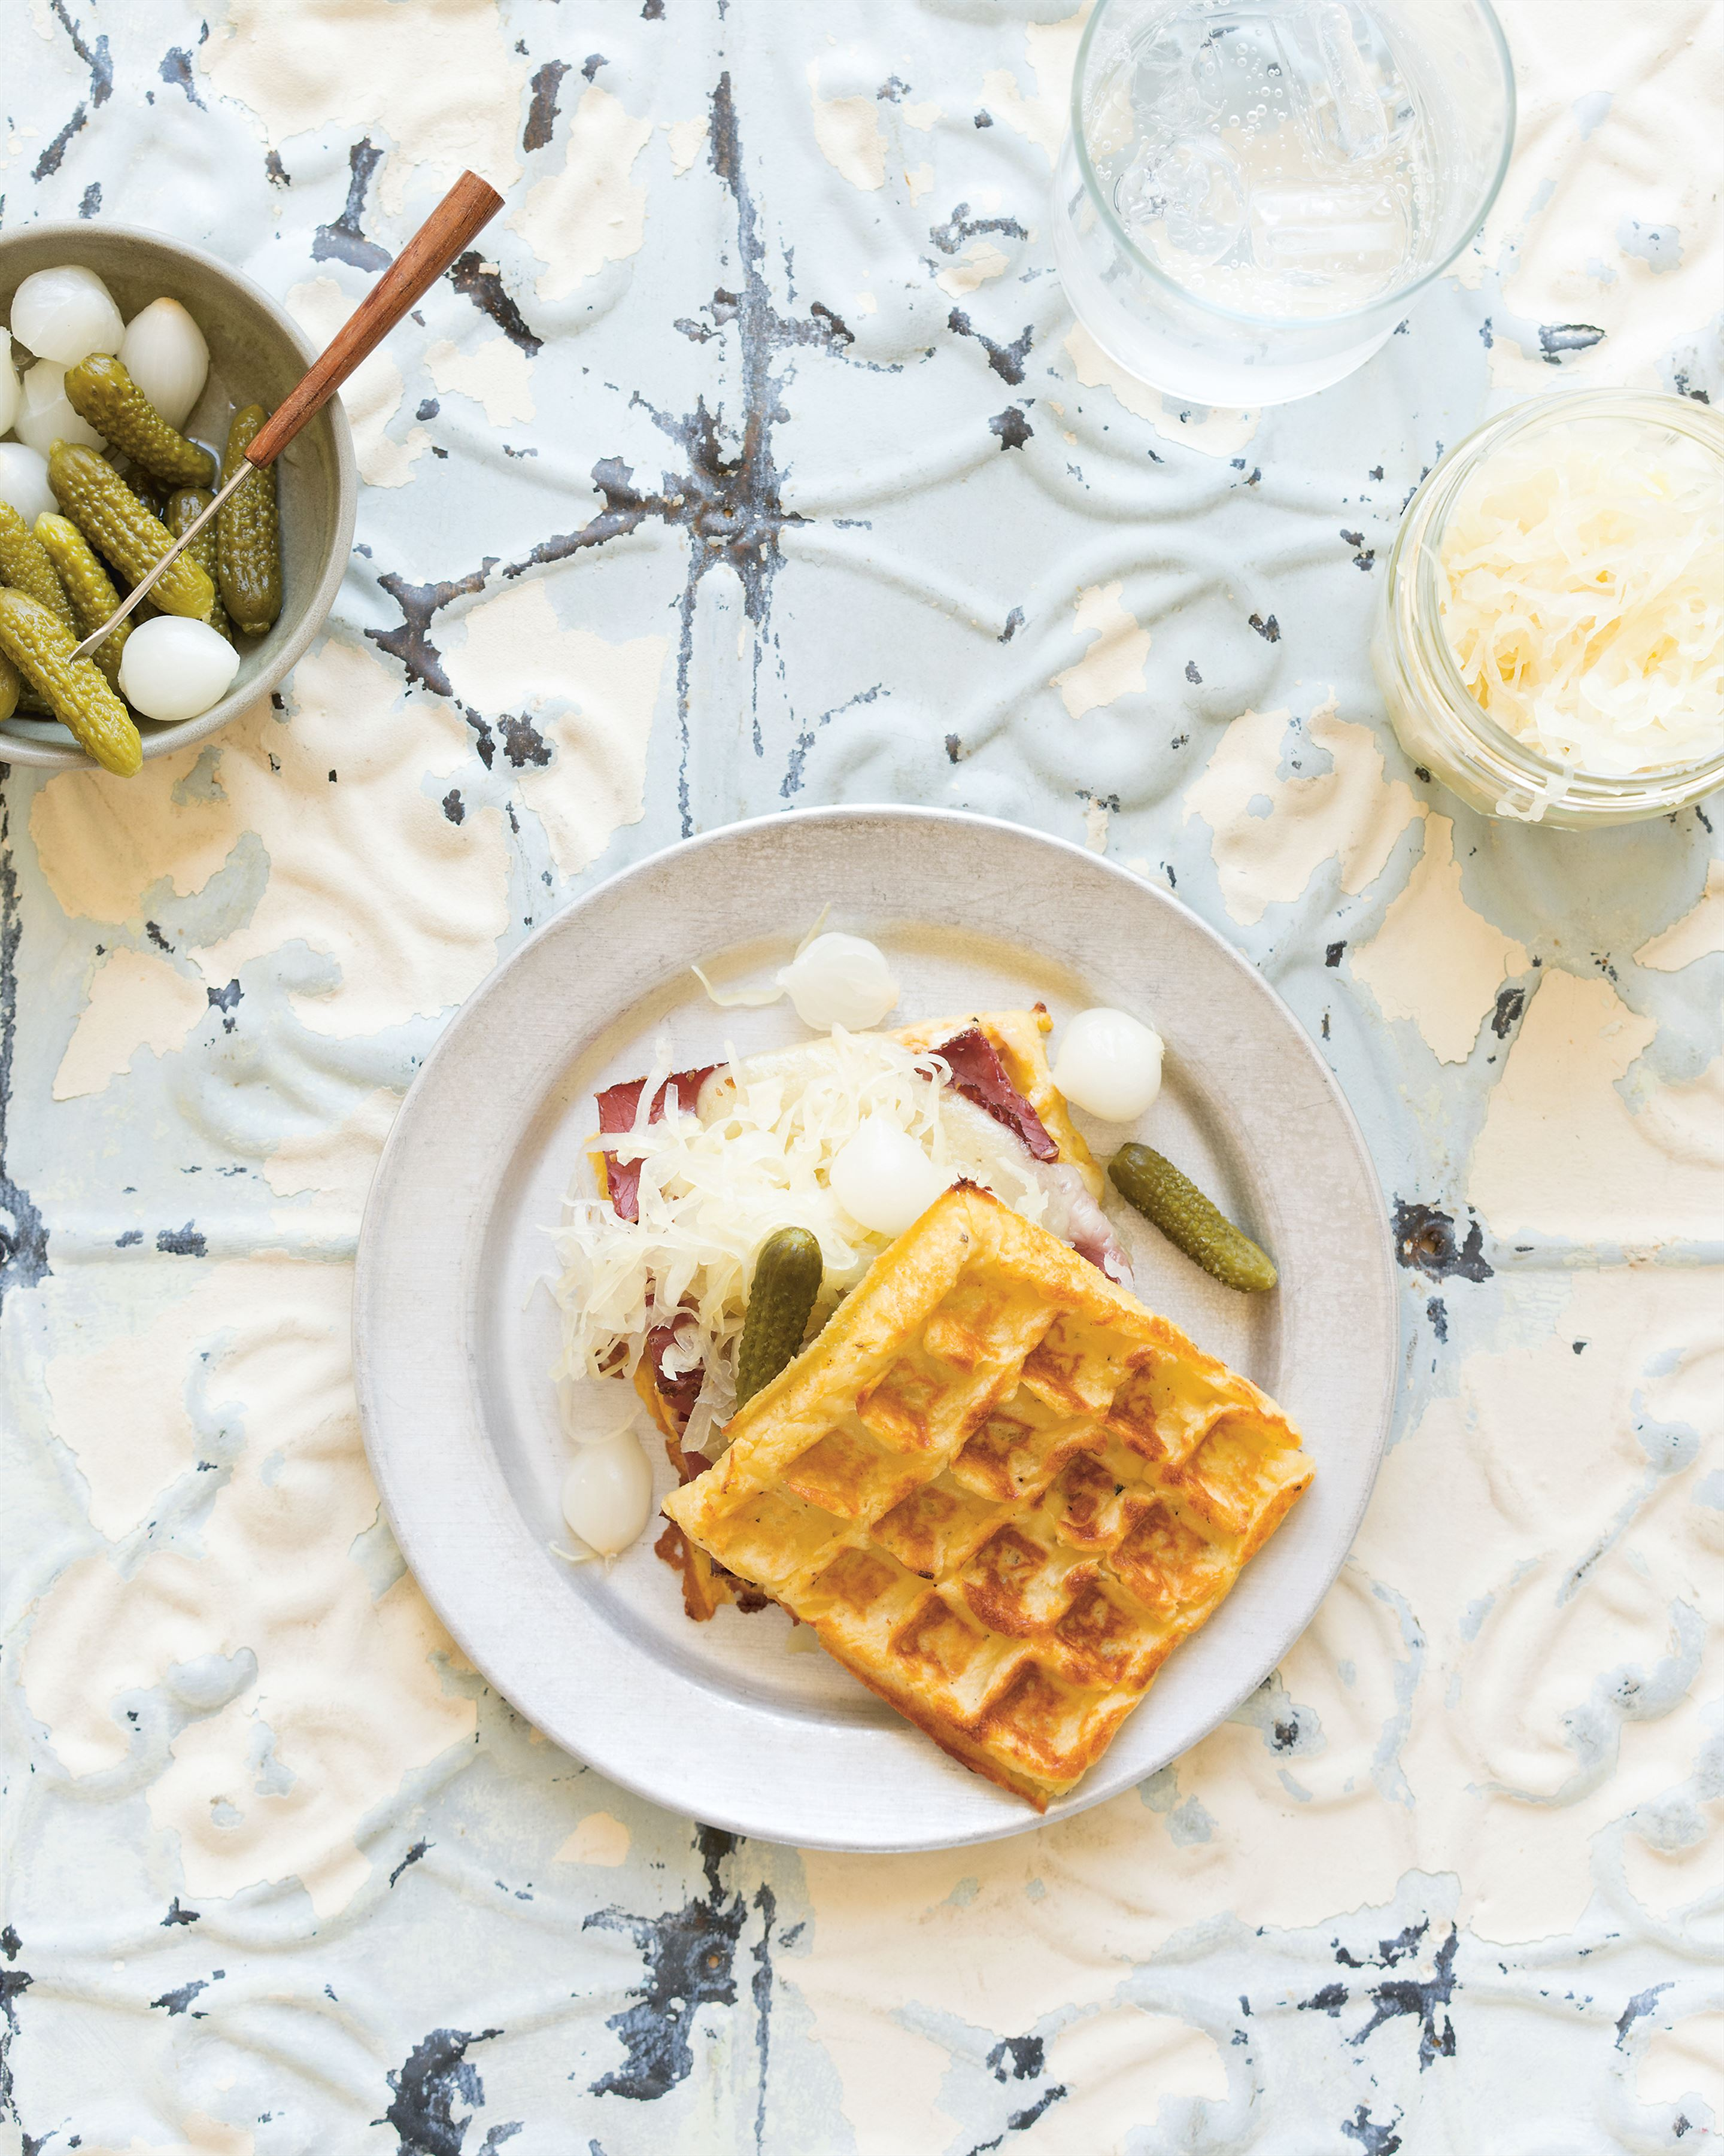 Potato waffles with pastrami & sauerkraut